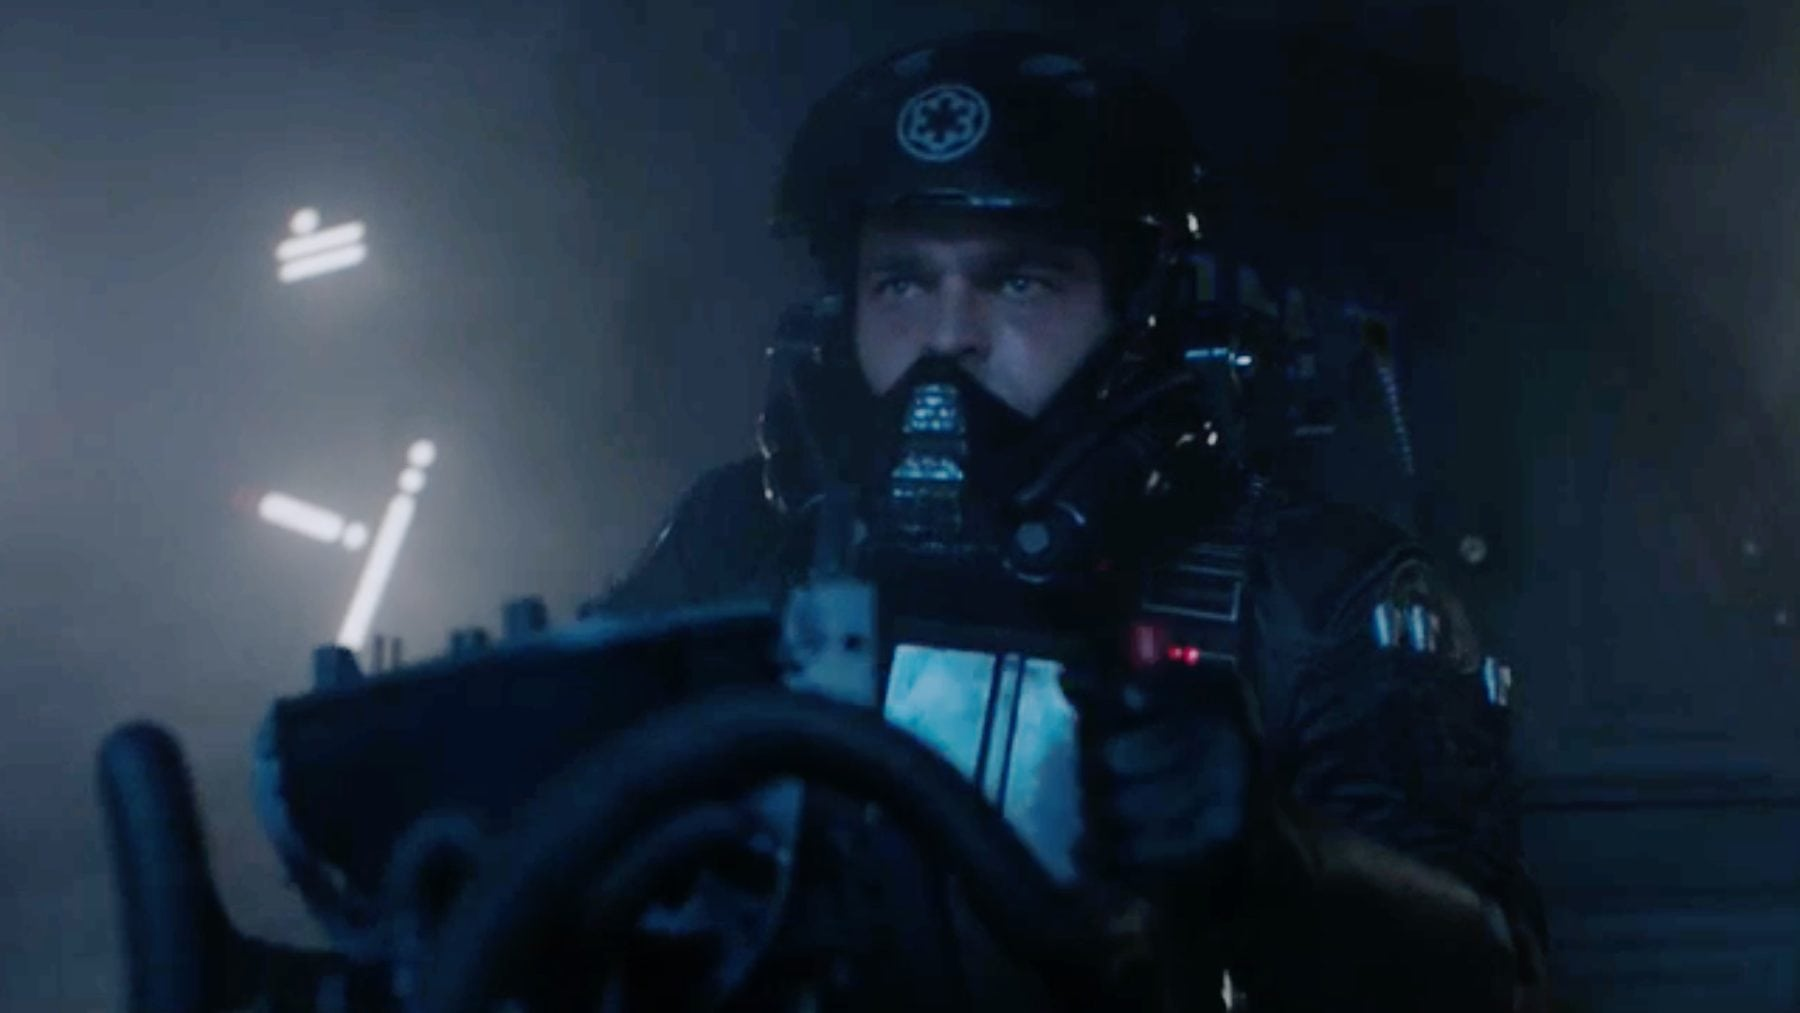 Han trains as a TIE pilot in deleted Solo: A Star Wars Story scene